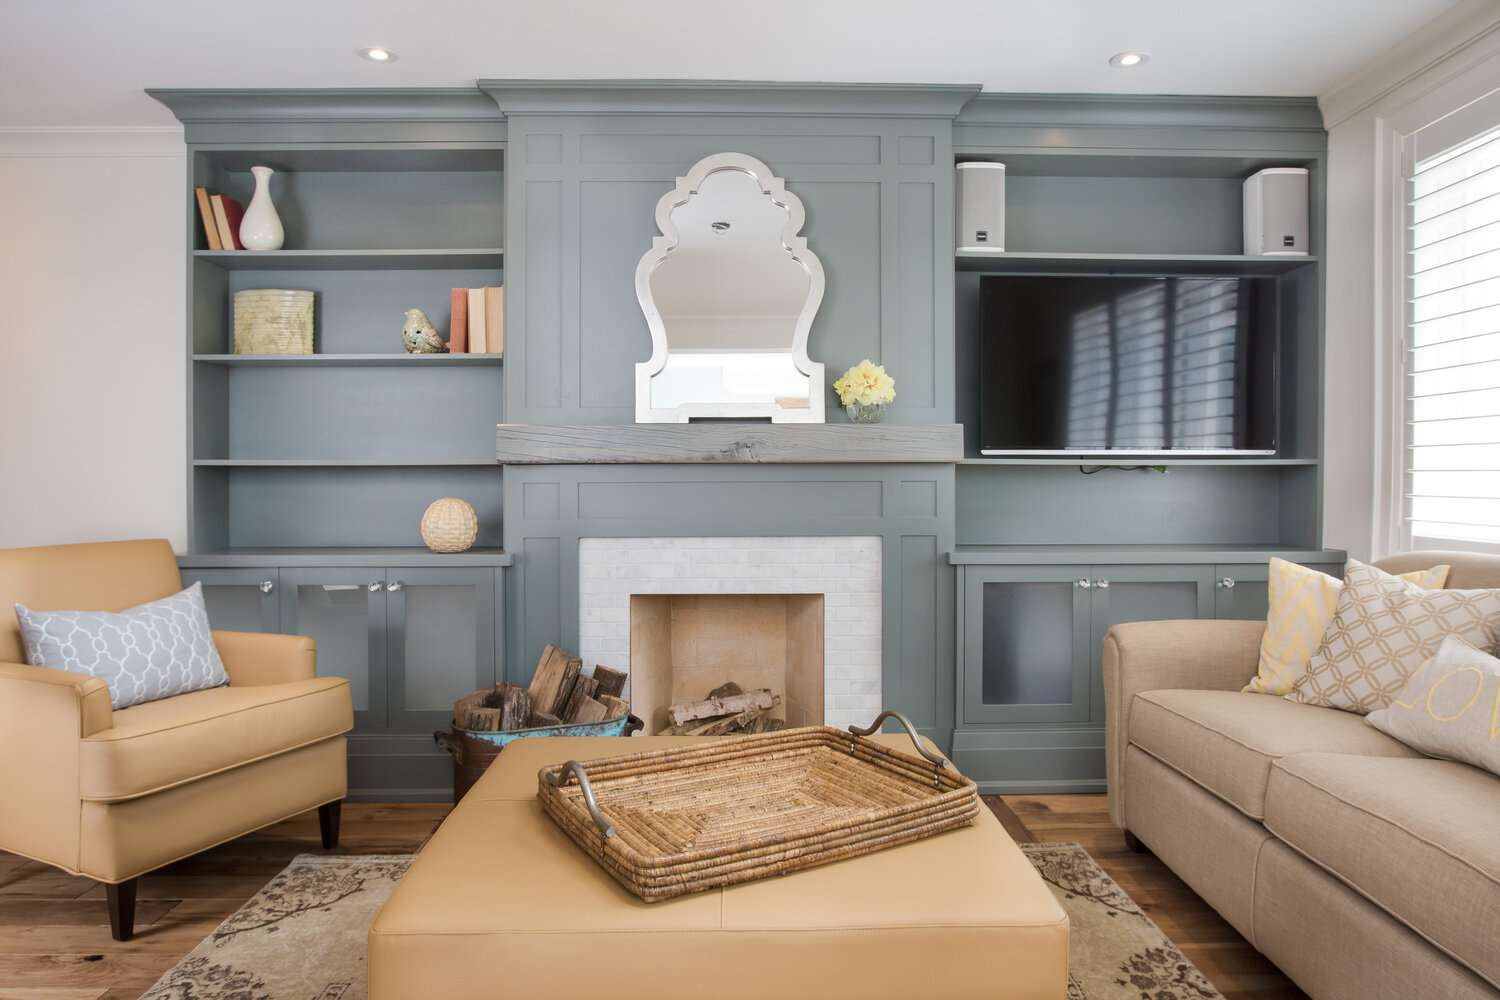 fireplace with wood in it